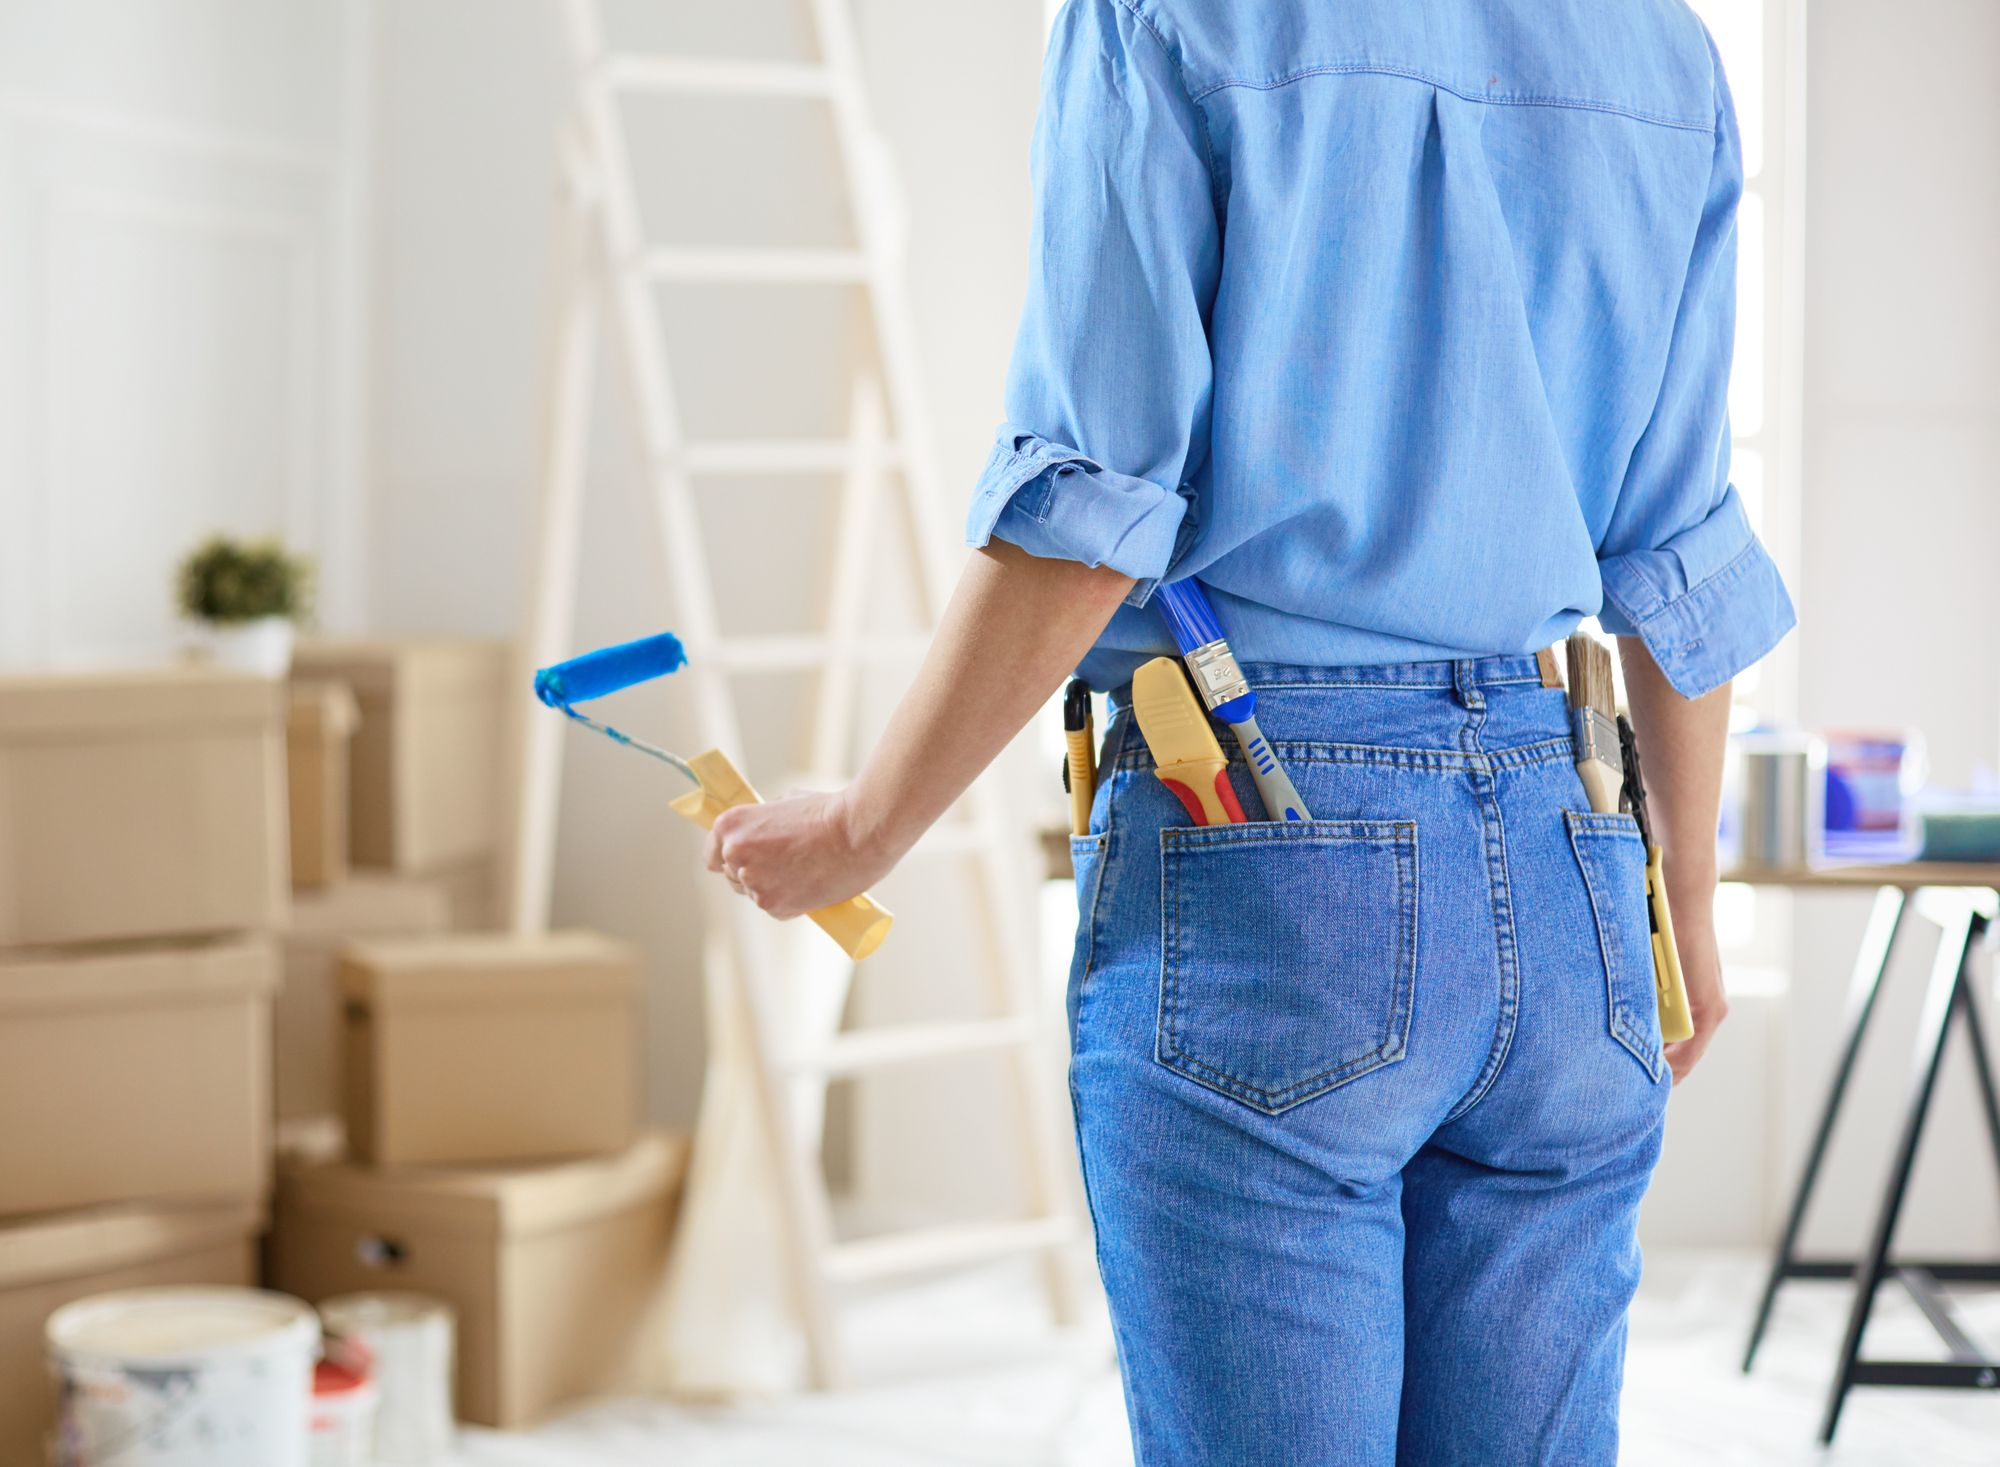 Summer Home Improvement Projects: Bang for the Buck